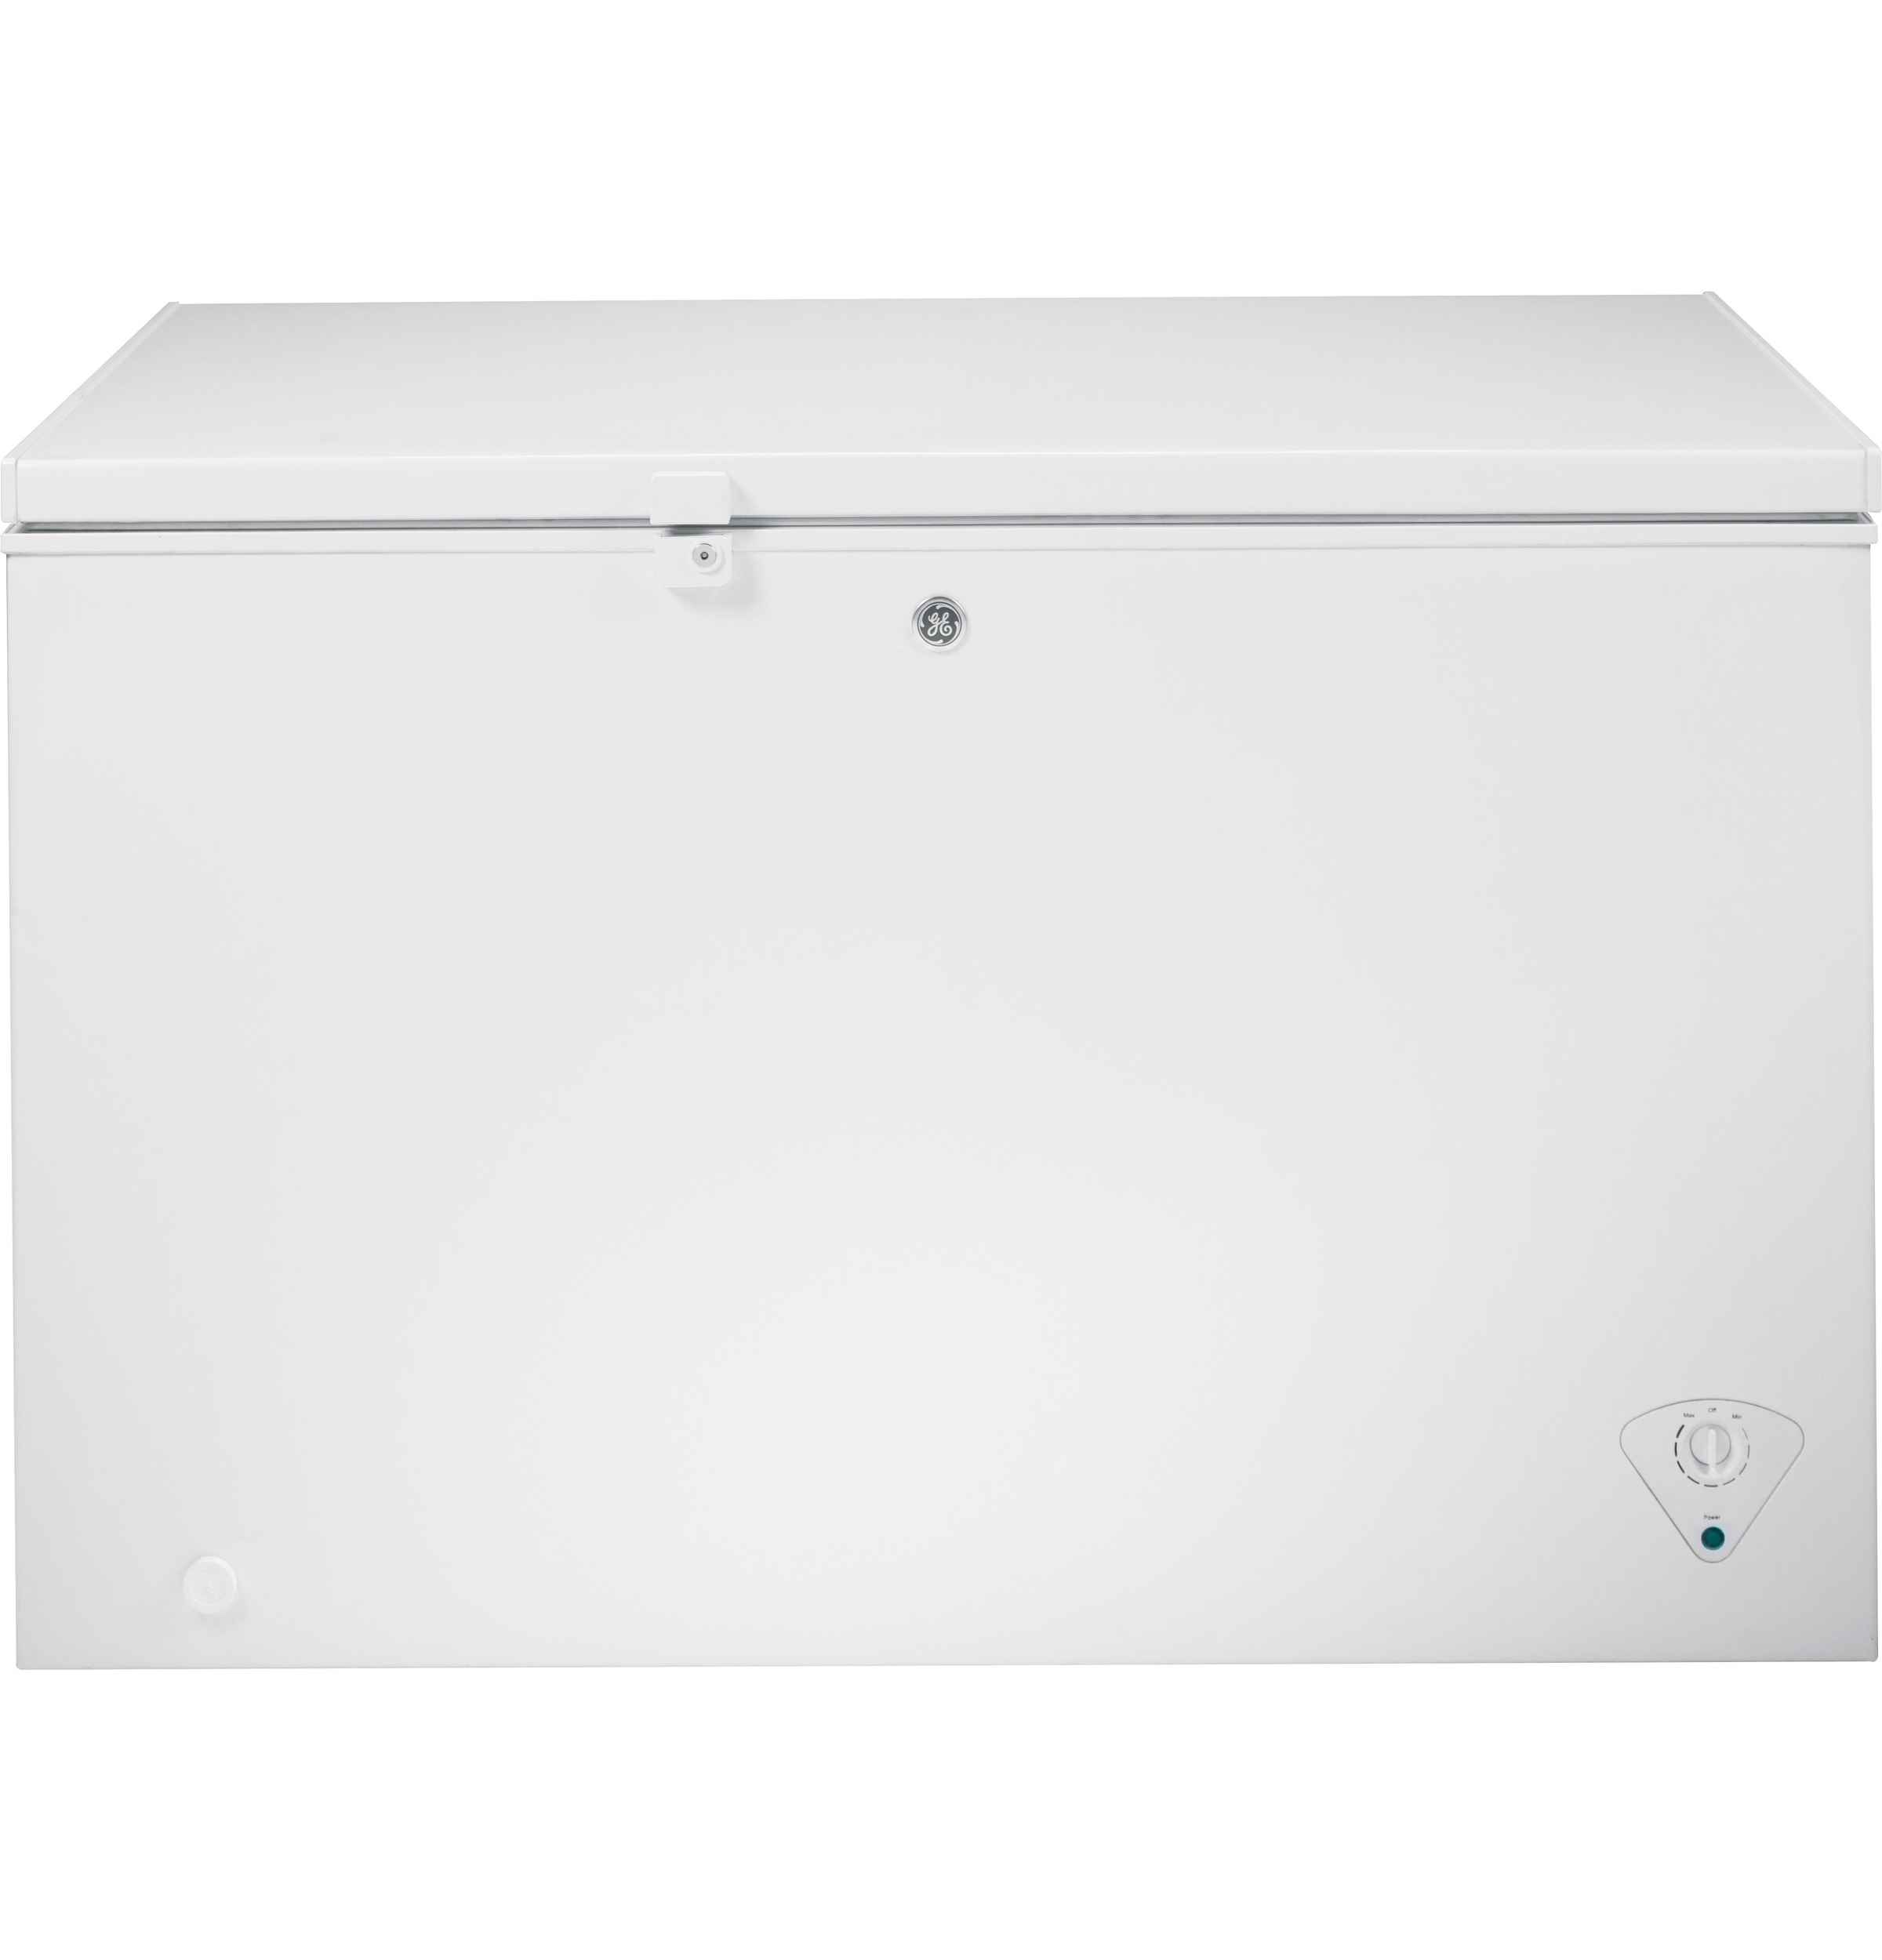 FREEZER - GE CHEST 10.6CF WHITE - HOME IMPROVEMENT OUTLET